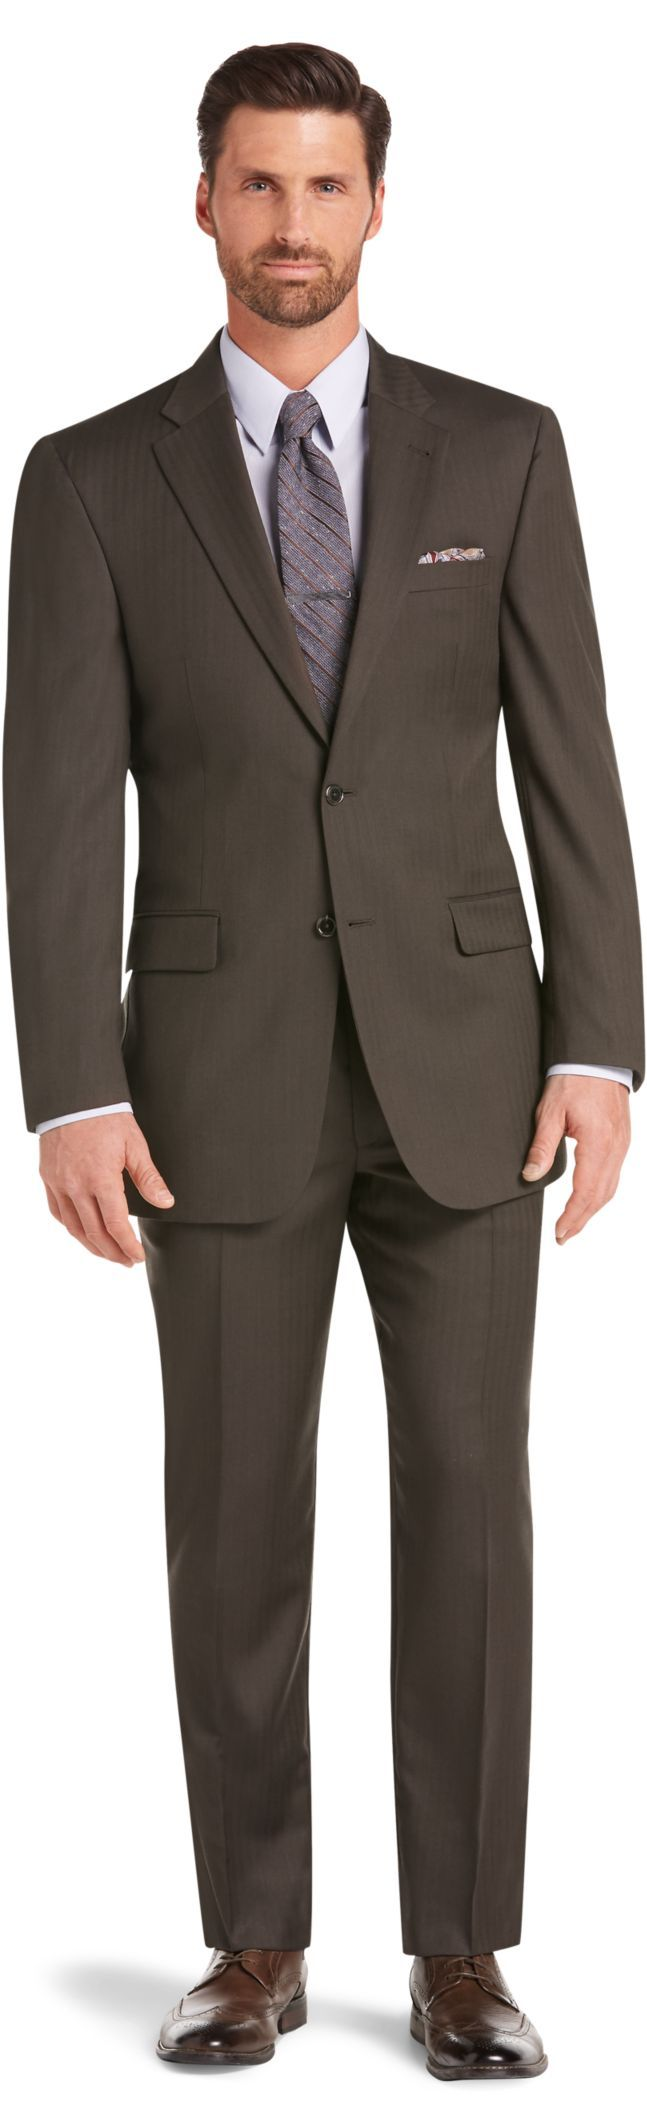 087c45cd126 Signature Collection Tailored Fit Herringbone Suit CLEARANCE ...